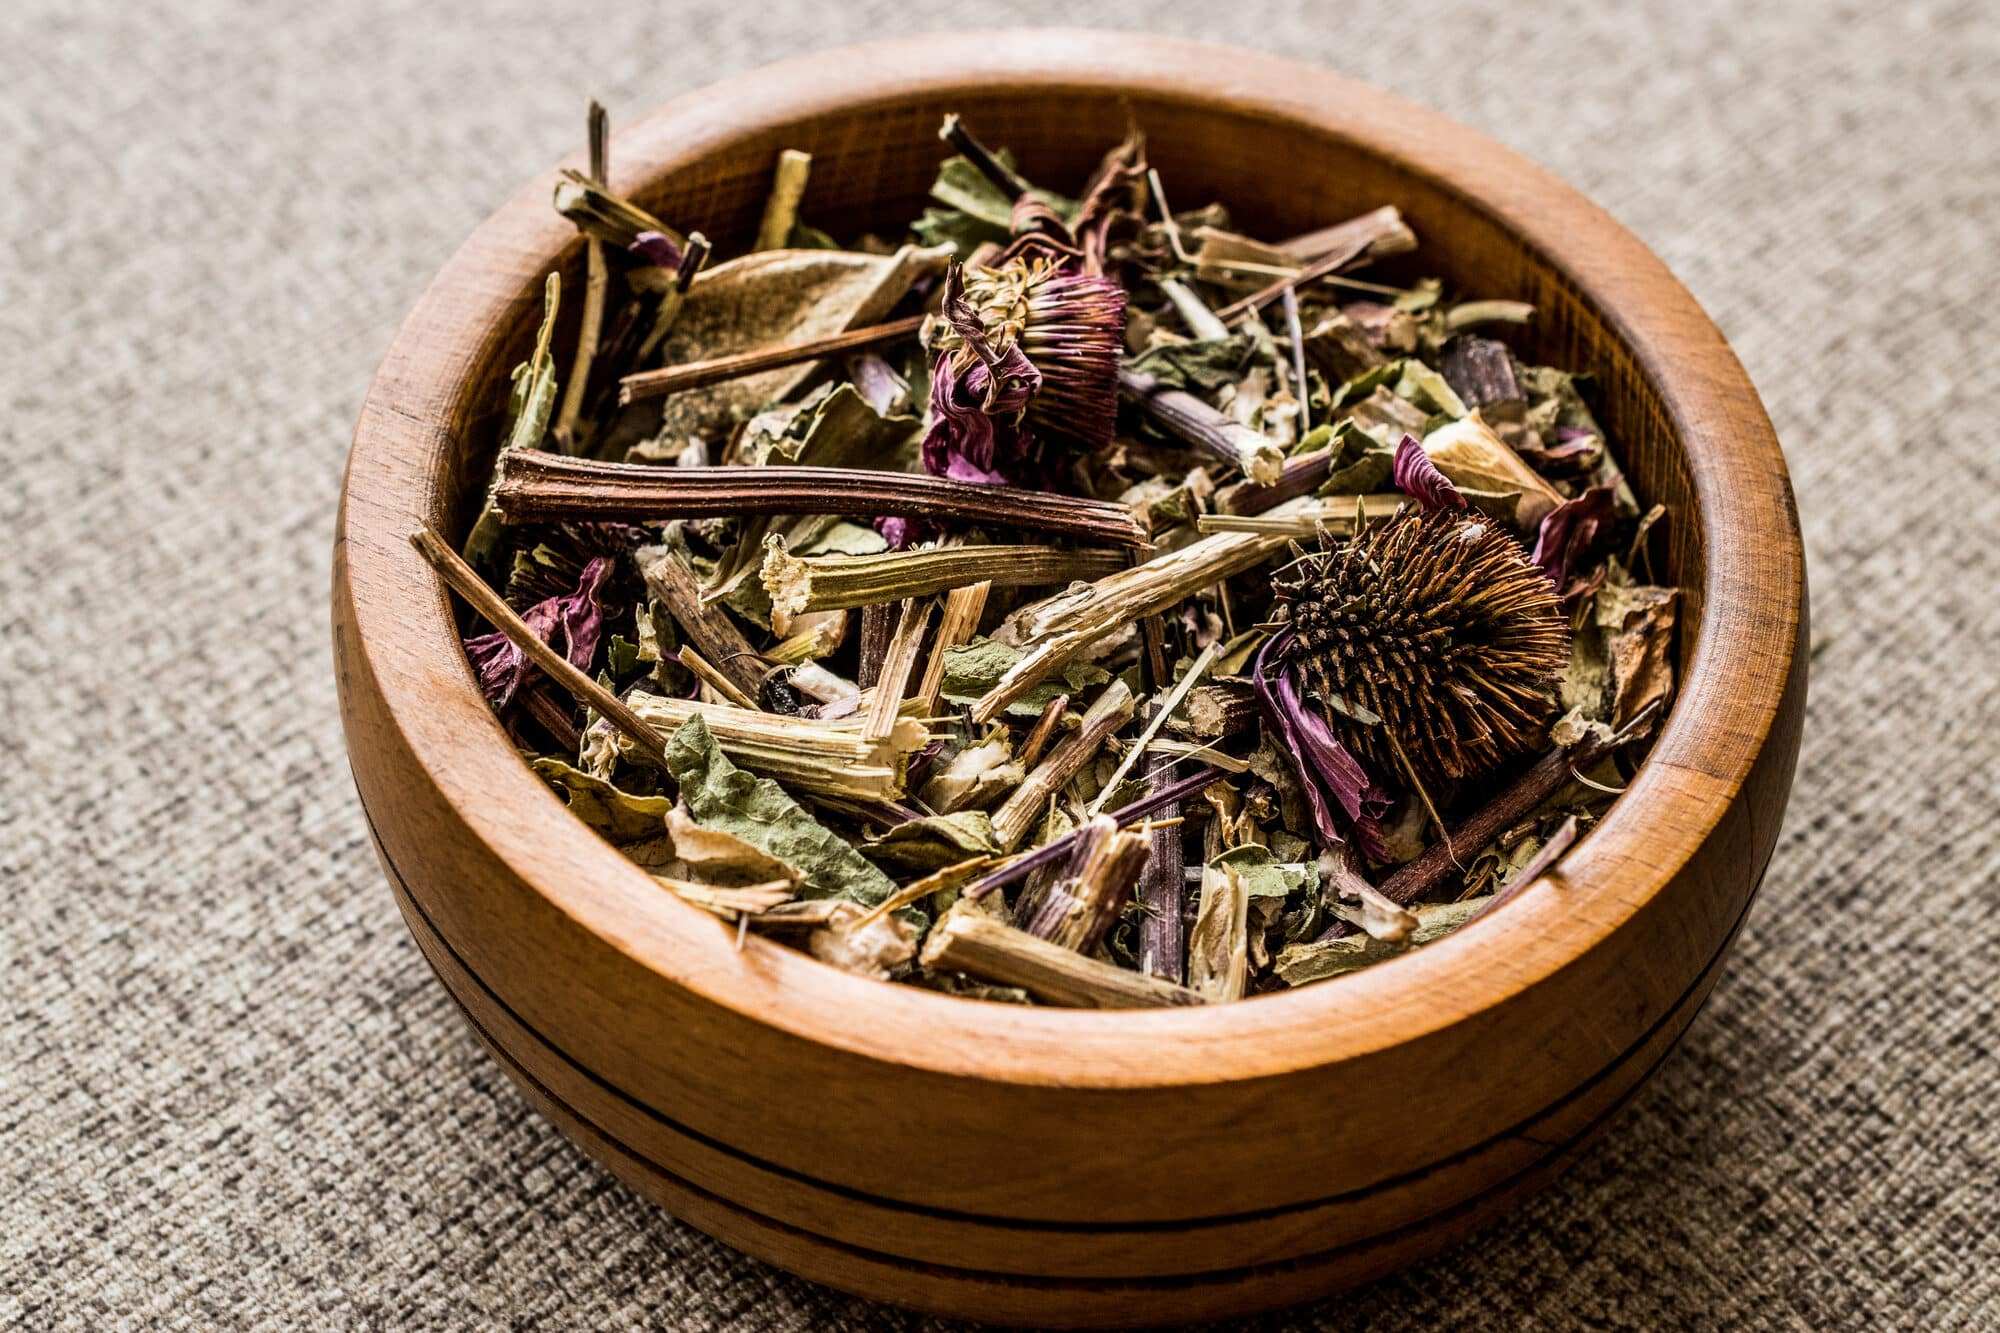 Echinacea Root Vs. Leaf: SPICEography Showdown